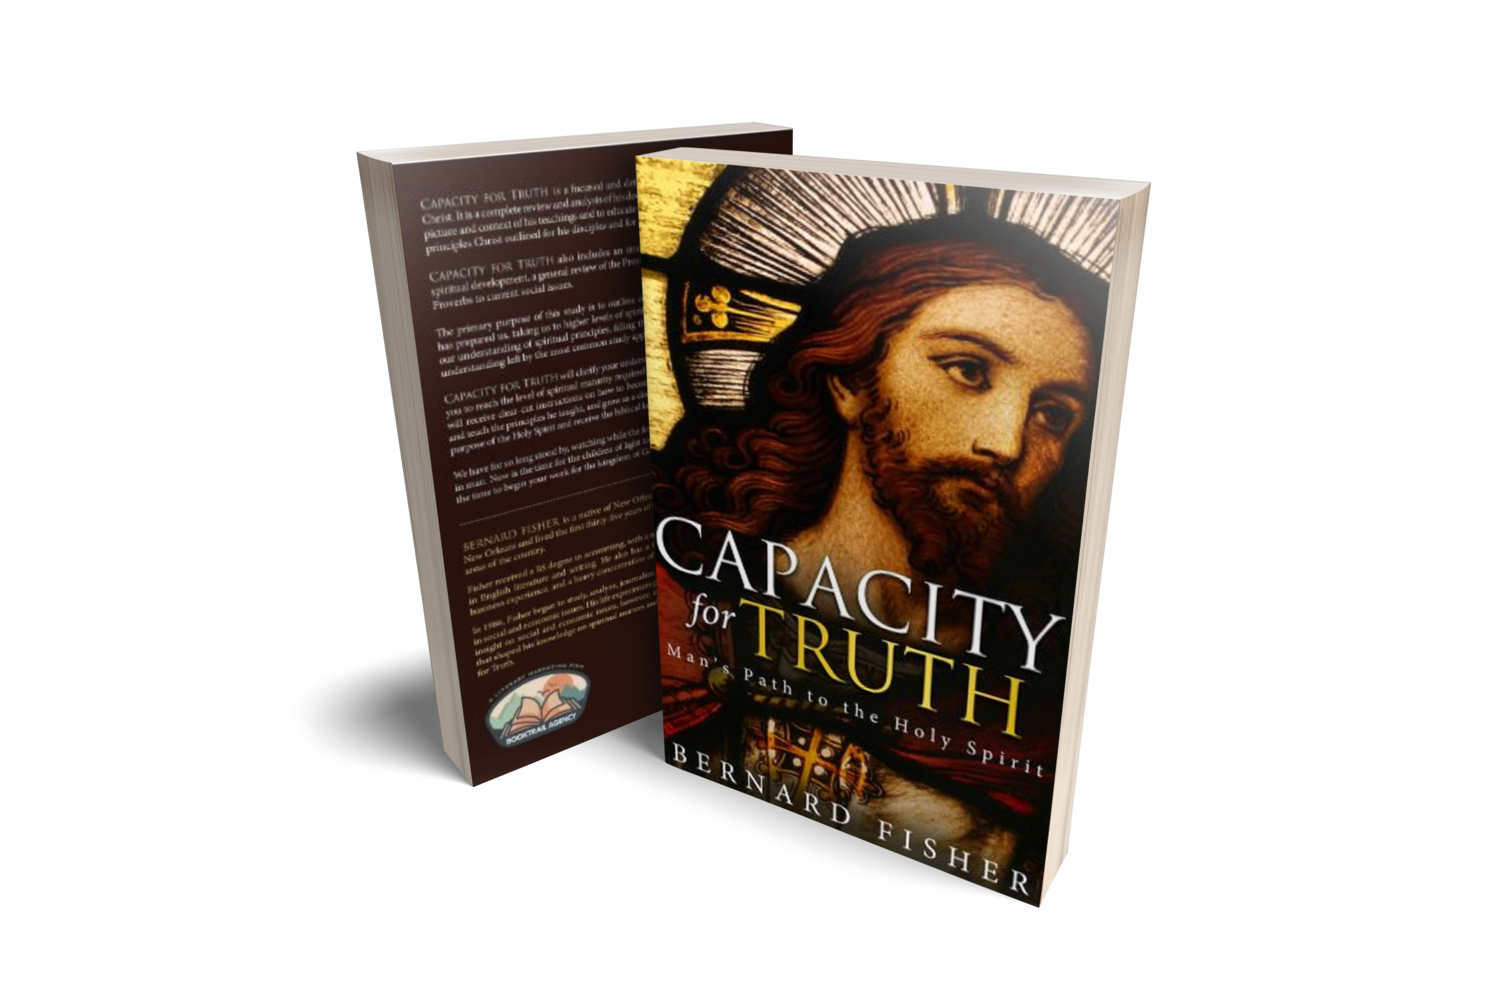 Capacity for Truth: Man's Path to the Holy Spirit